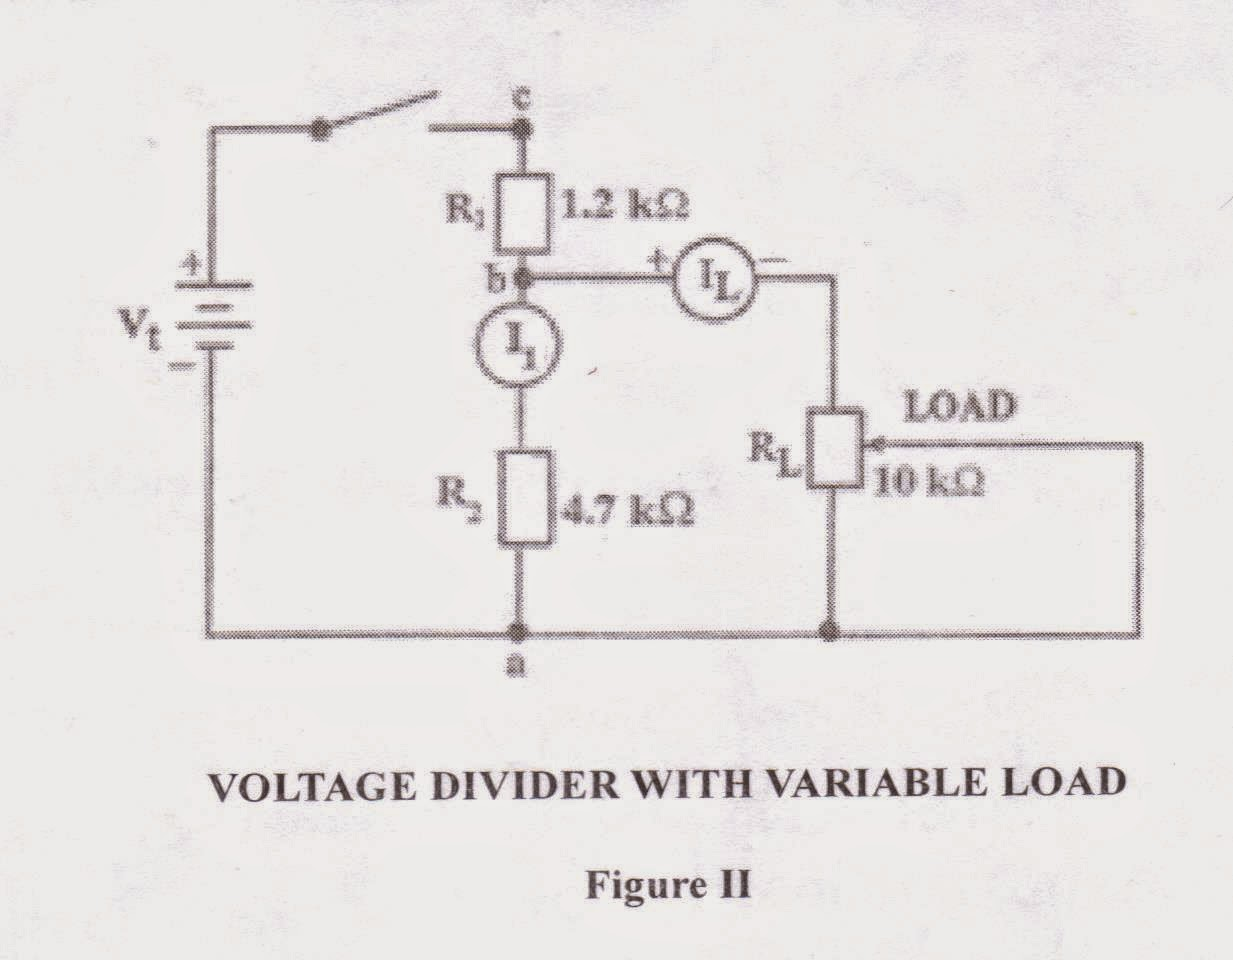 Exercise 2 Electrical Sba Voltage Divider In Series And Parallel Circuit